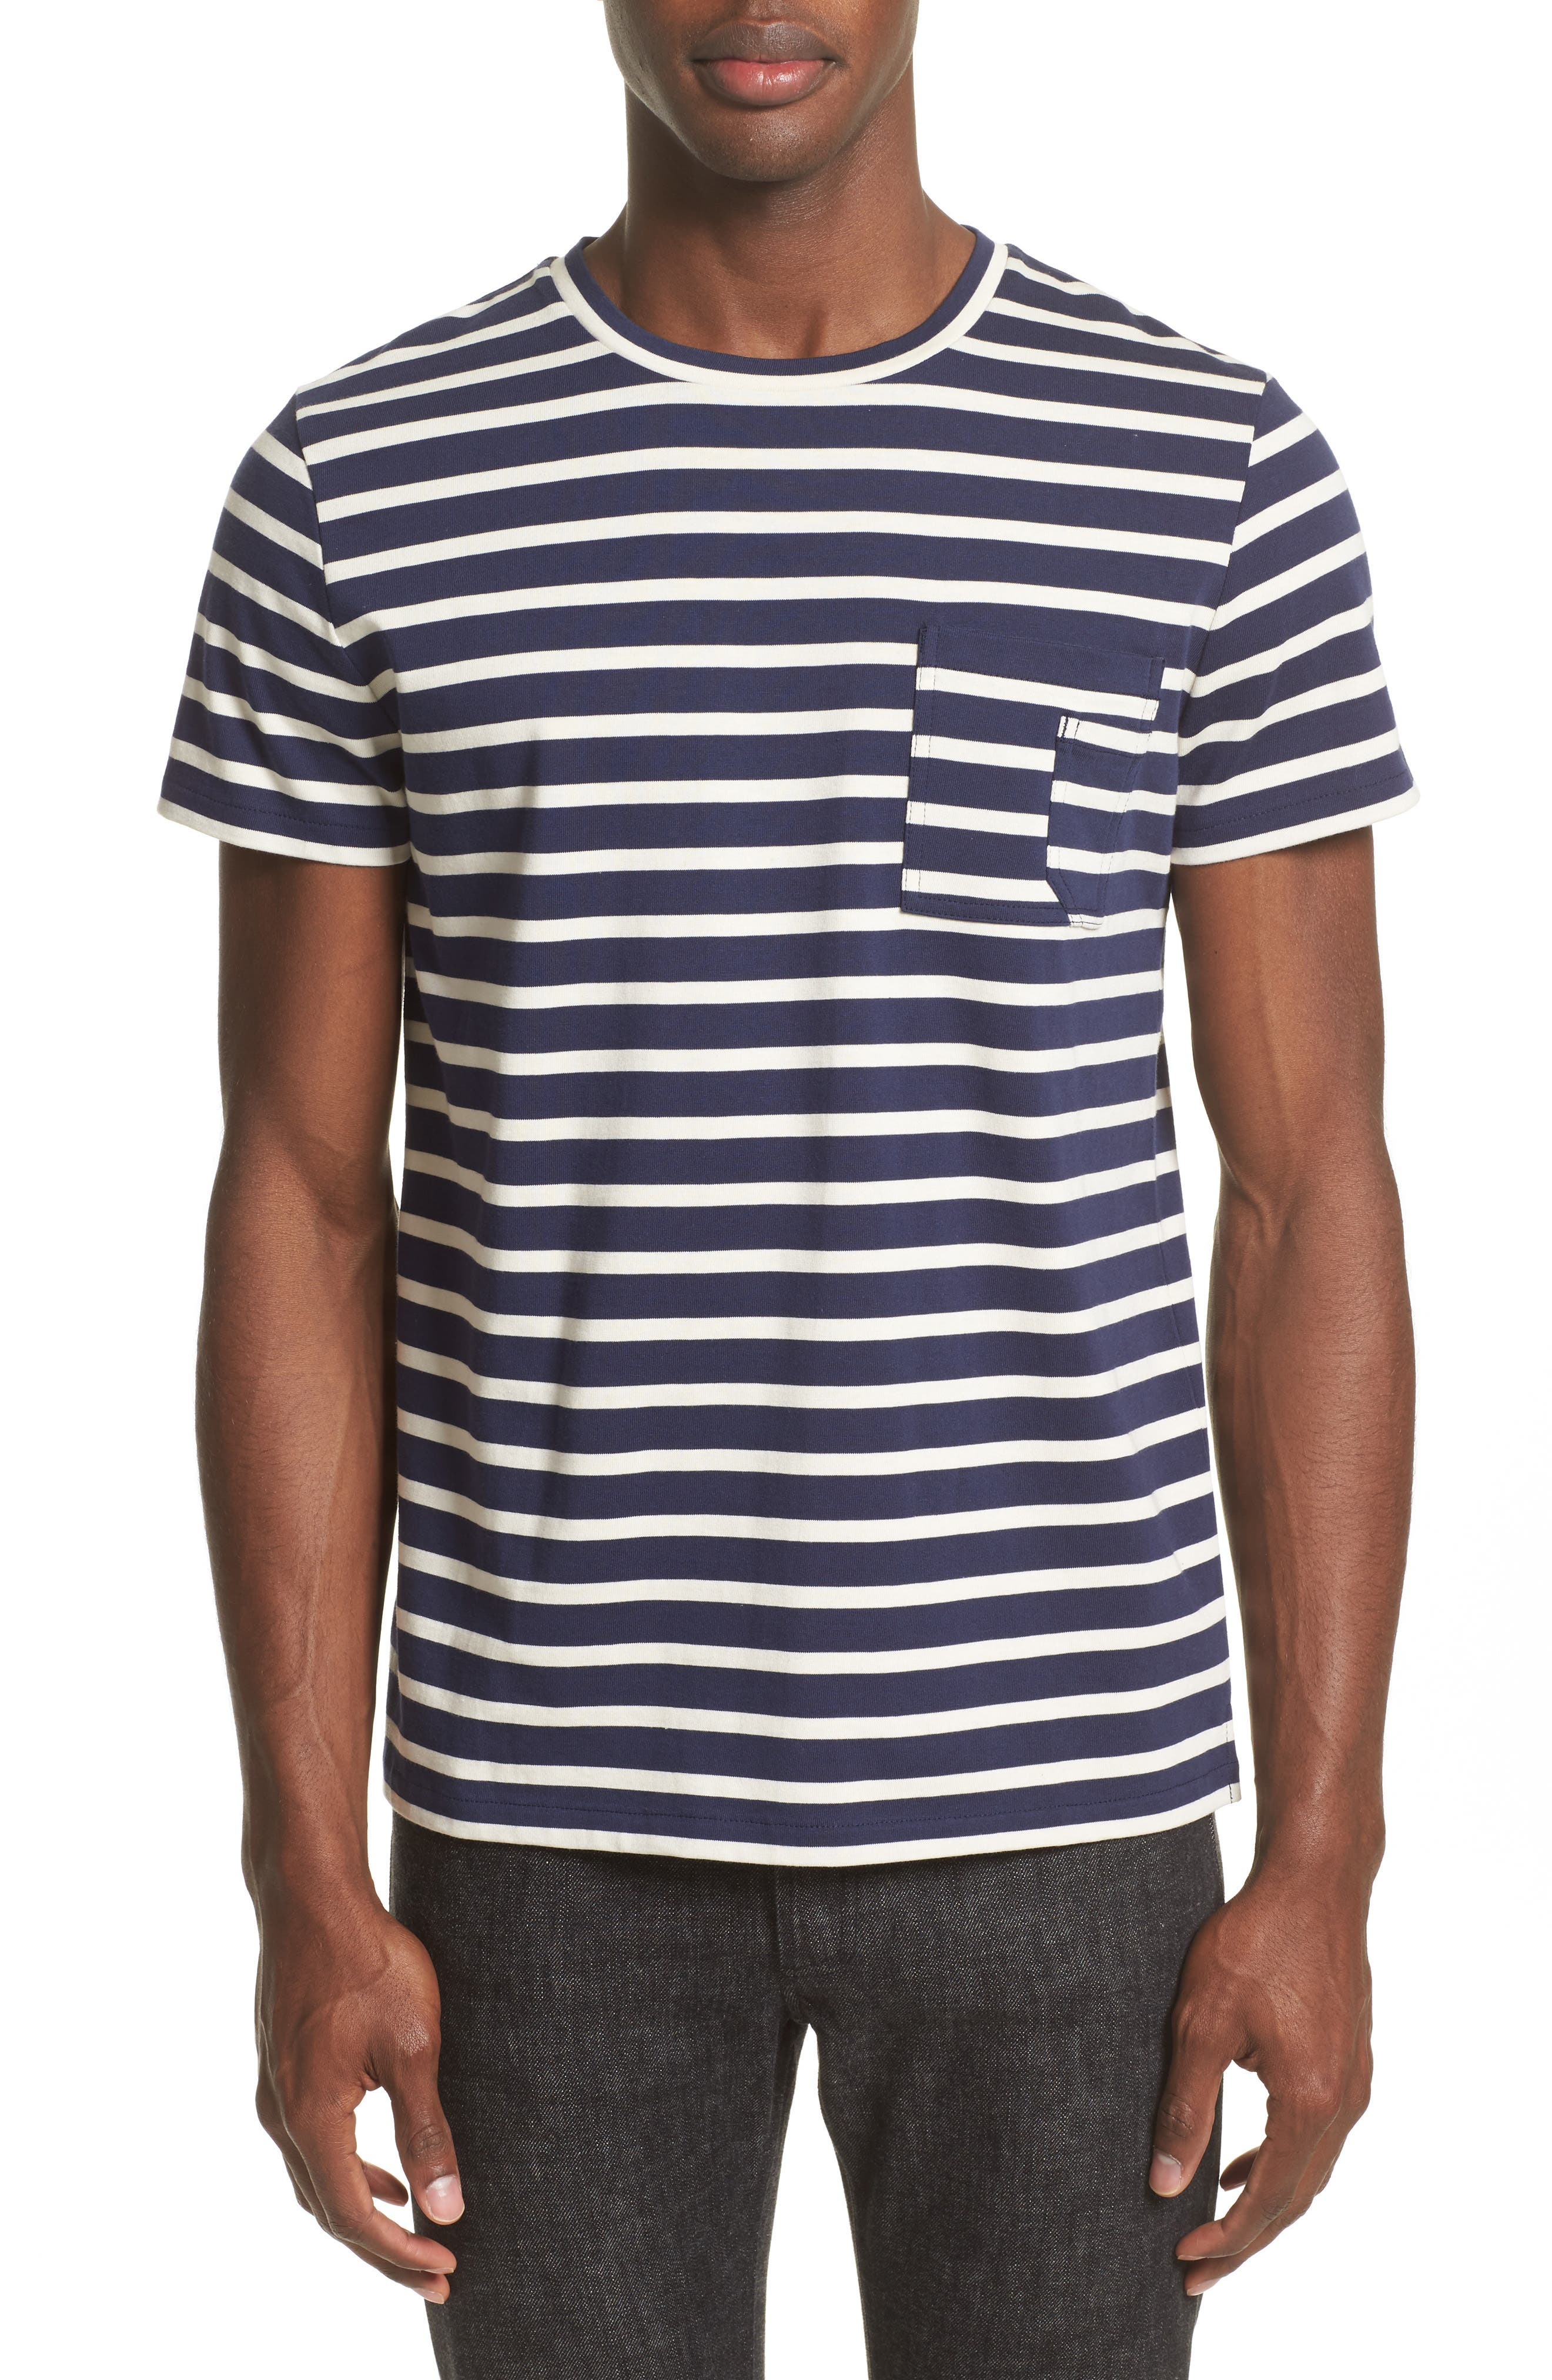 Alternate Image 1 Selected - A.P.C. Stripe Pocket T-Shirt